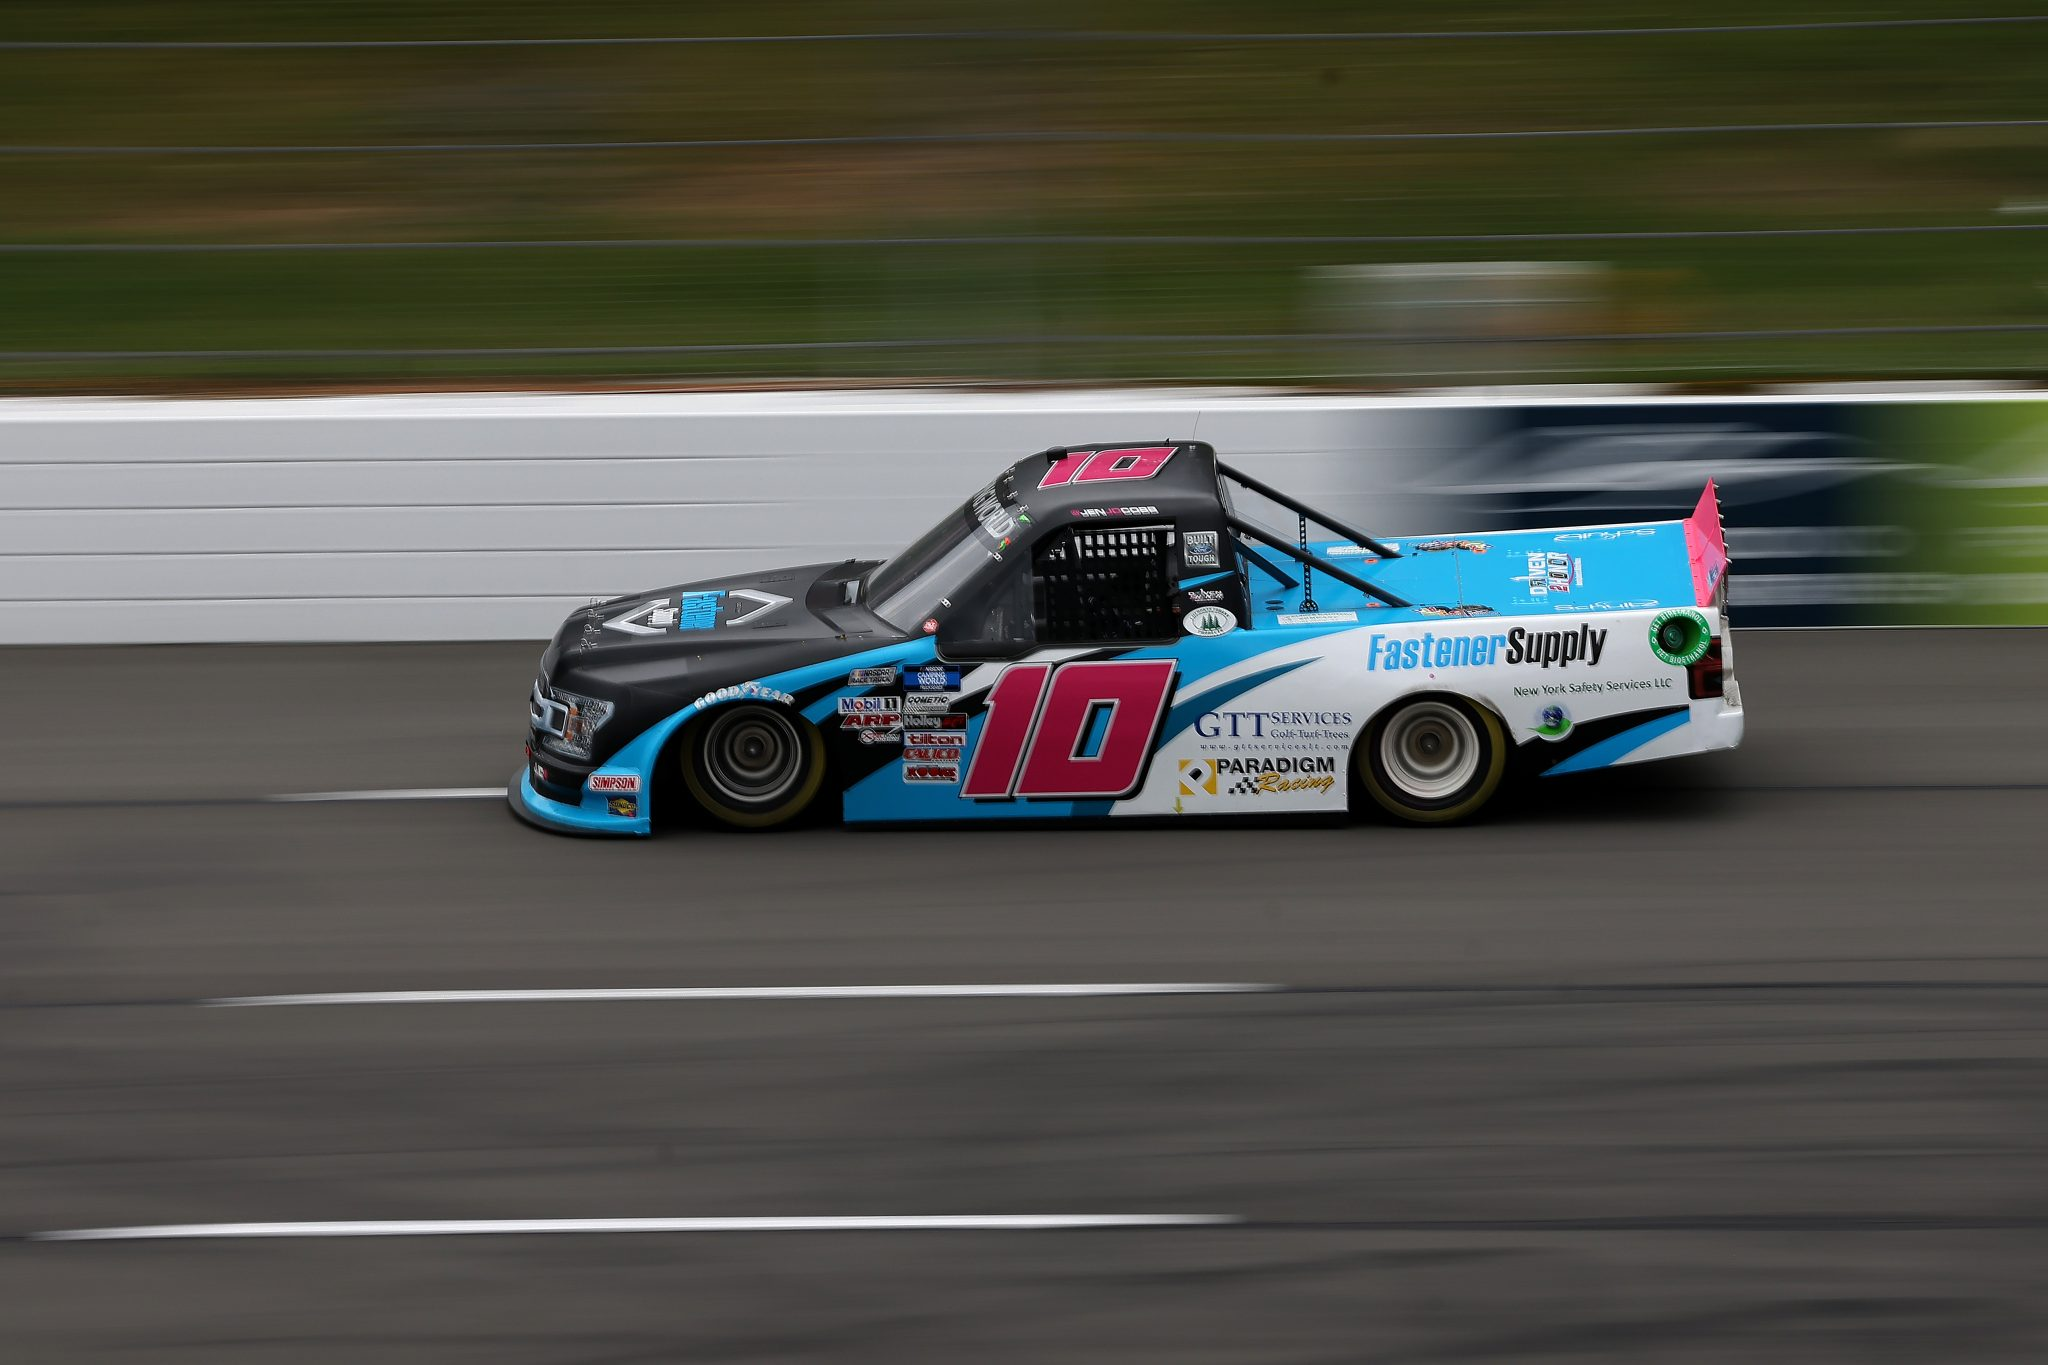 LONG POND, PENNSYLVANIA - JUNE 26: Jennifer Jo Cobb, driver of the #10 Fastener Supply Company Ford, drives during the NASCAR Camping World Truck Series CRC Brakleen 150 at Pocono Raceway on June 26, 2021 in Long Pond, Pennsylvania. (Photo by James Gilbert/Getty Images)   Getty Images